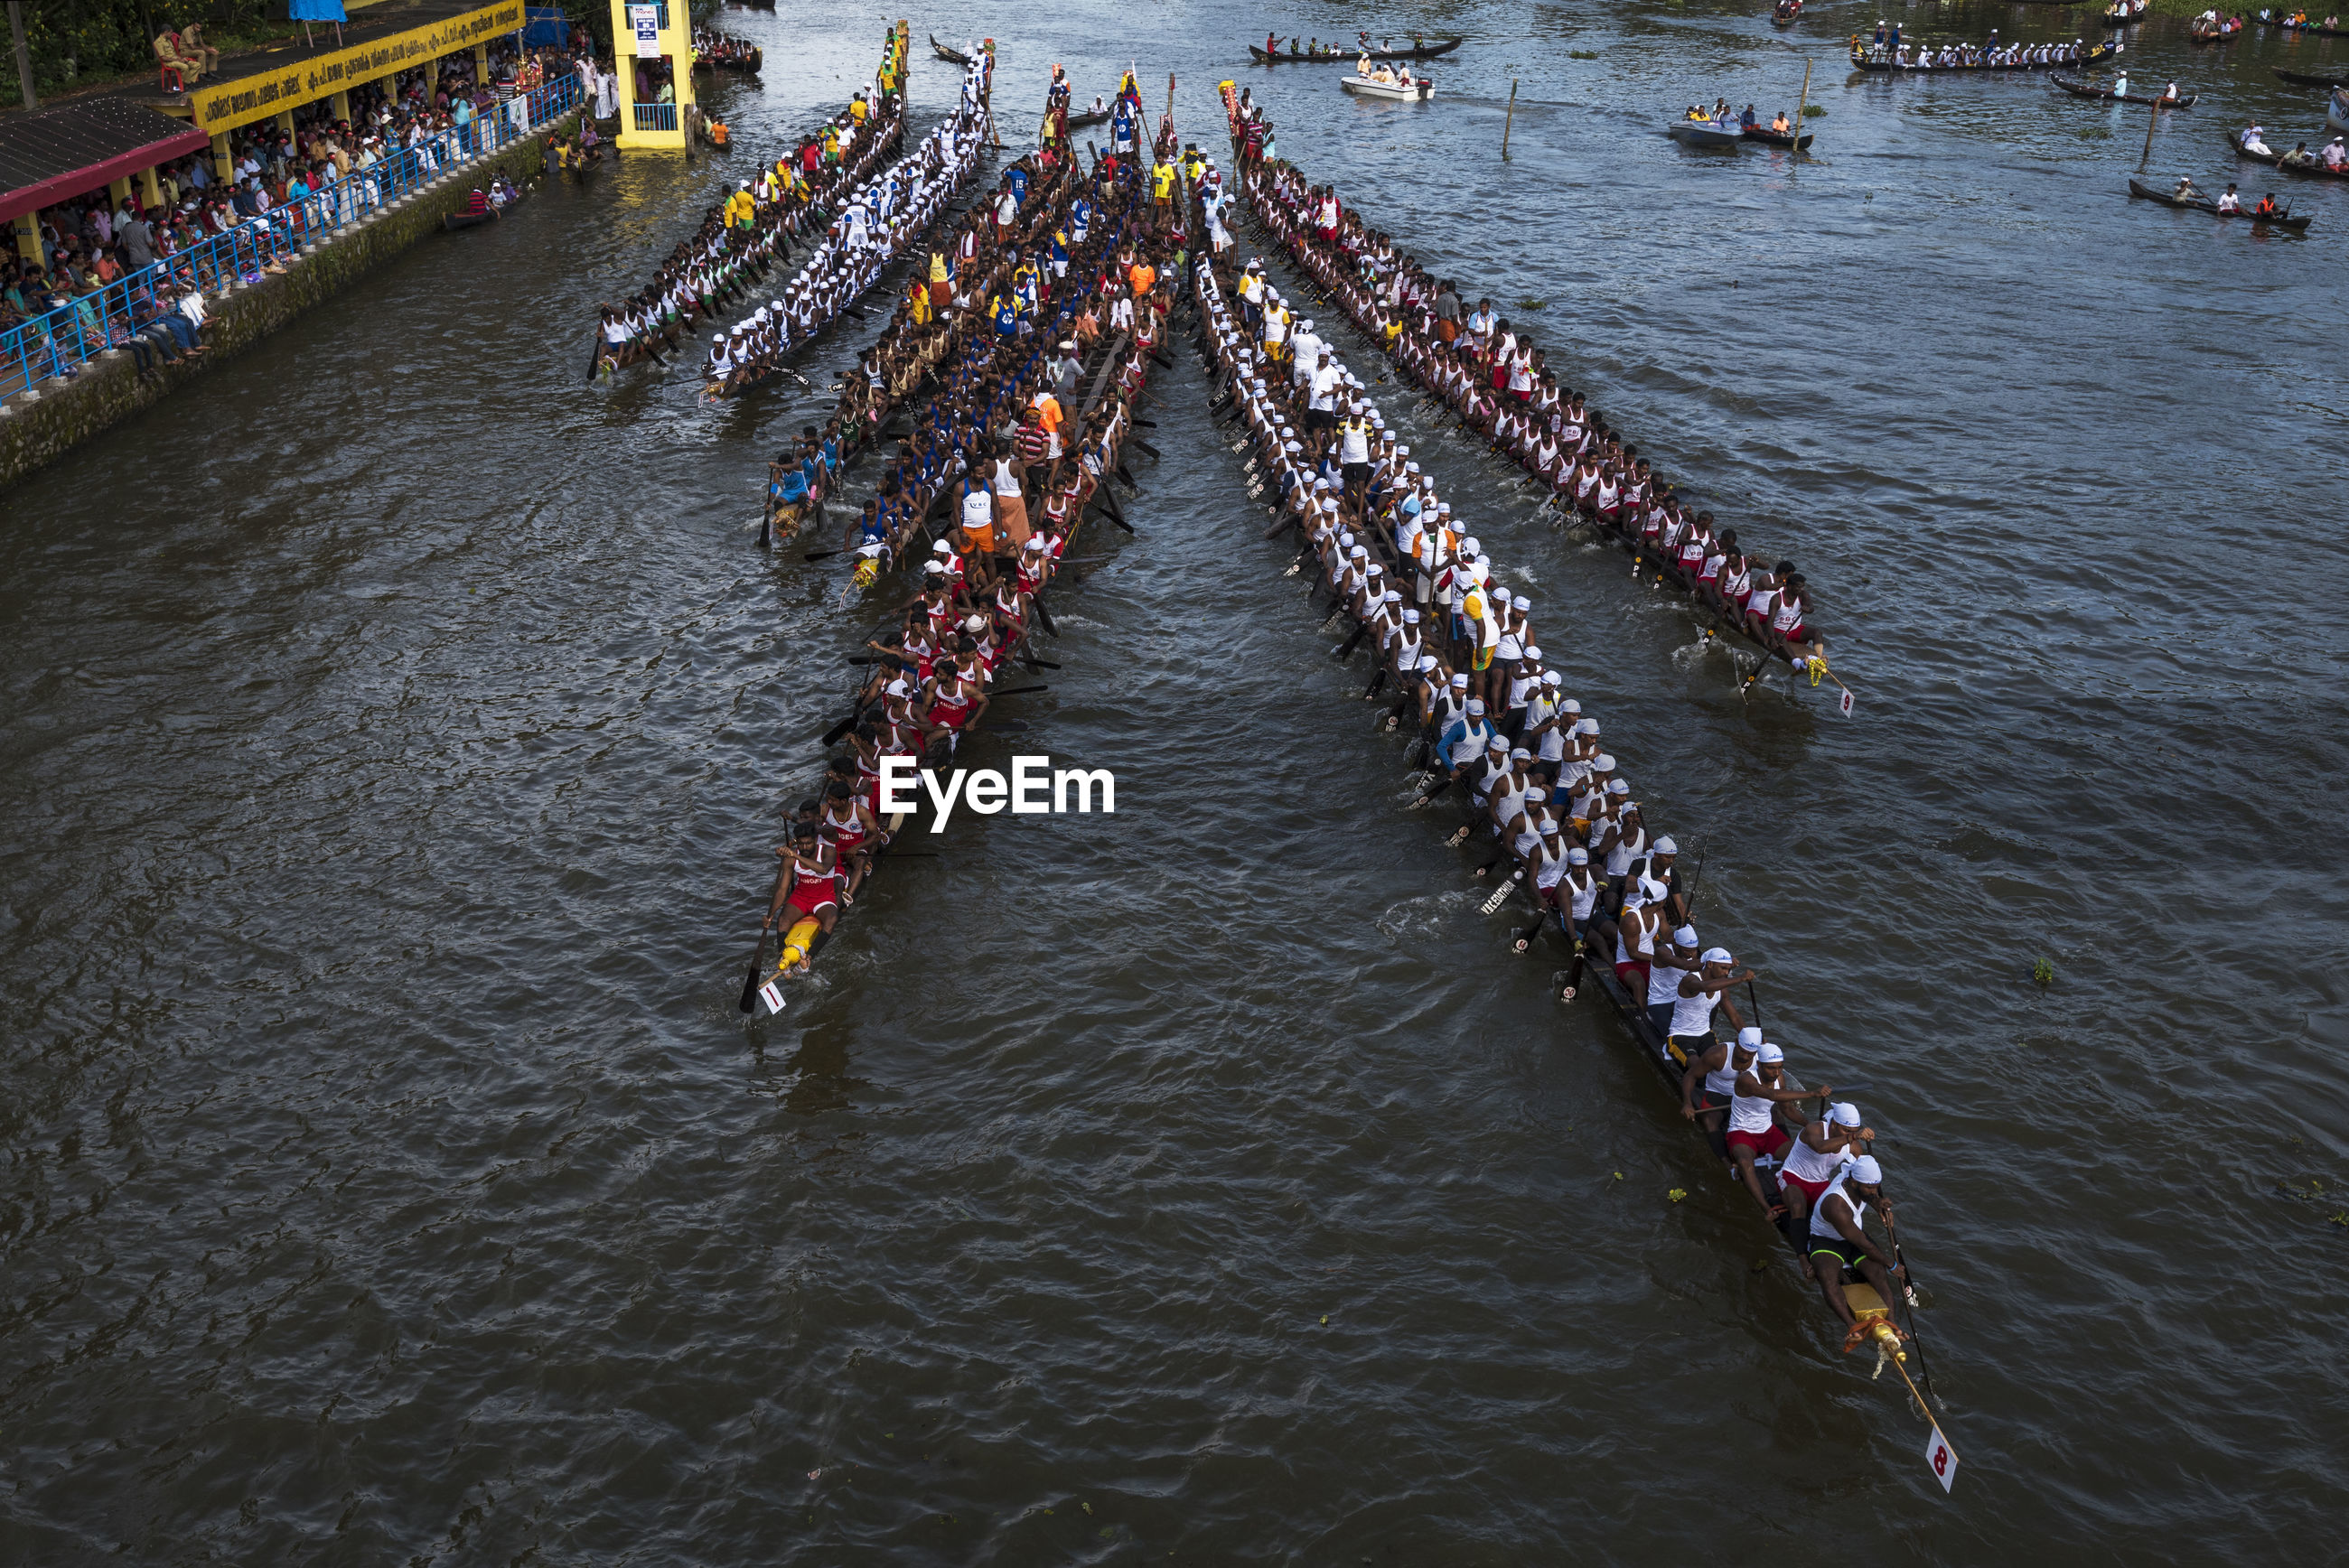 HIGH ANGLE VIEW OF PEOPLE ON RIVER